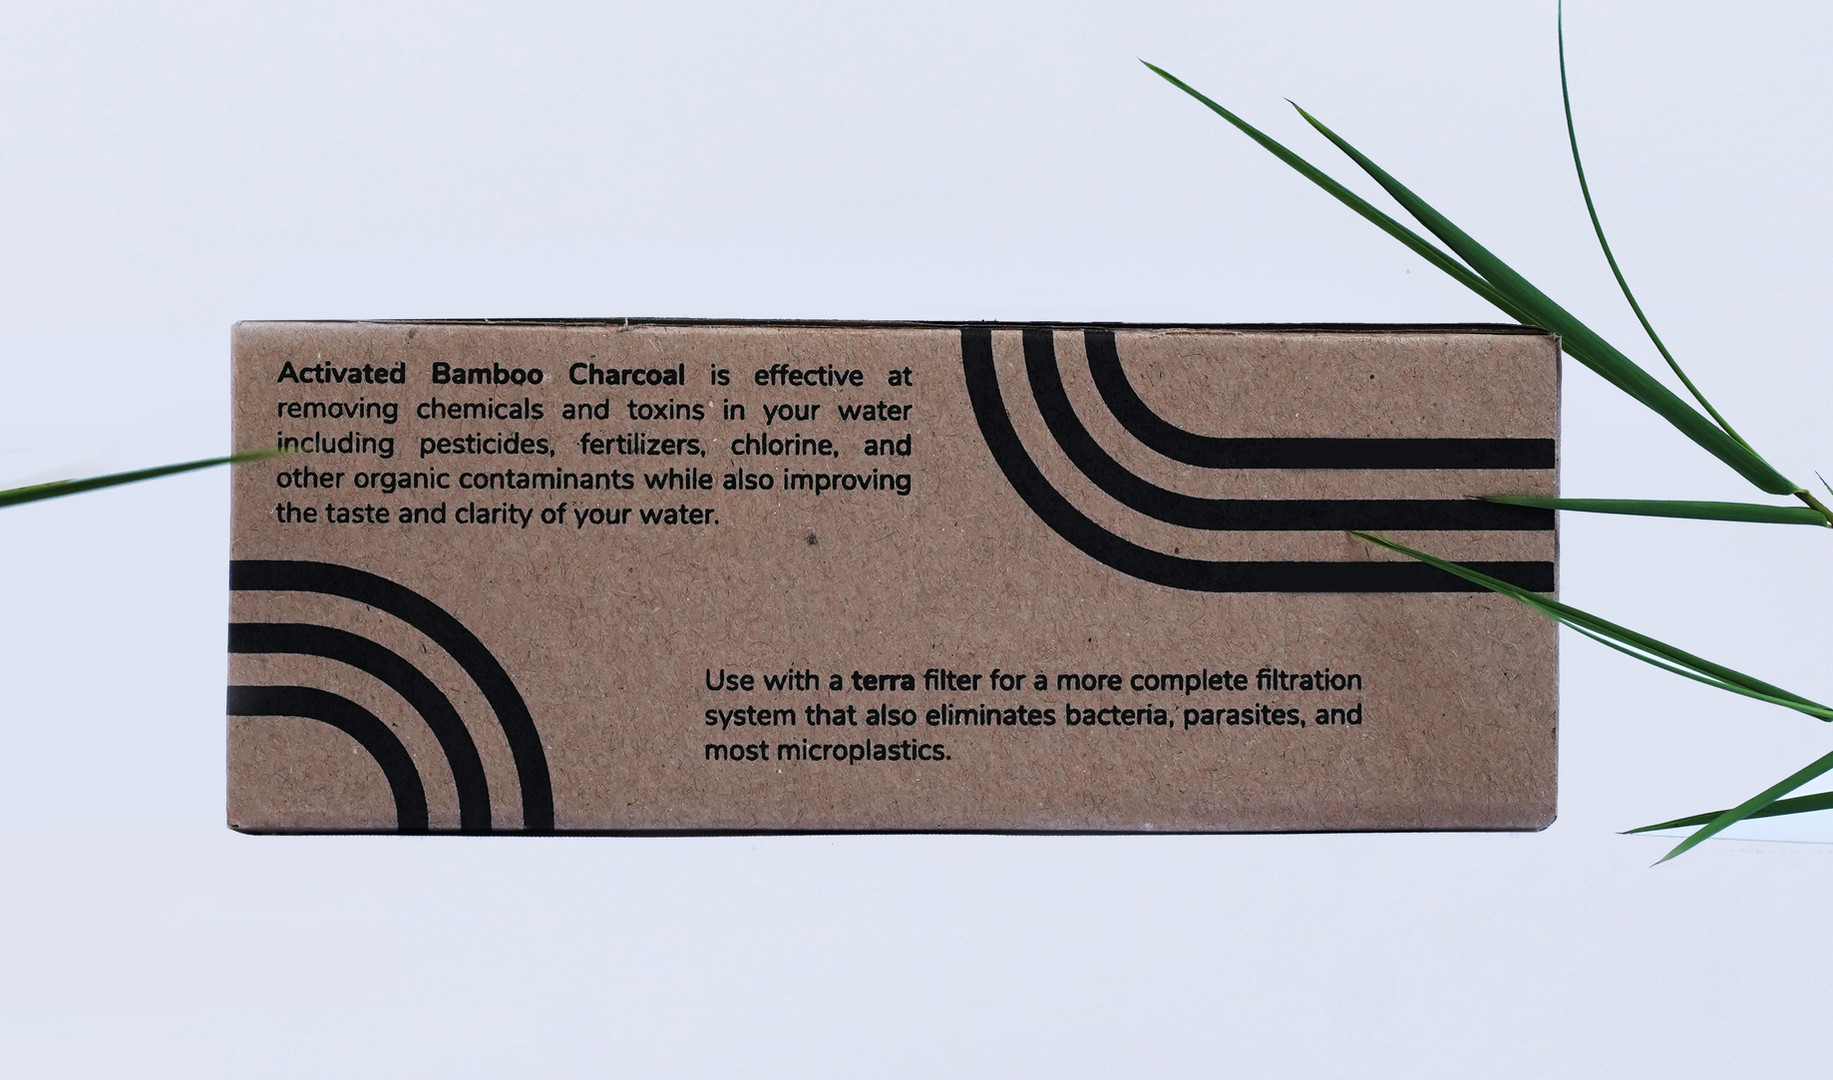 Actived Bamboo Charcoal Back